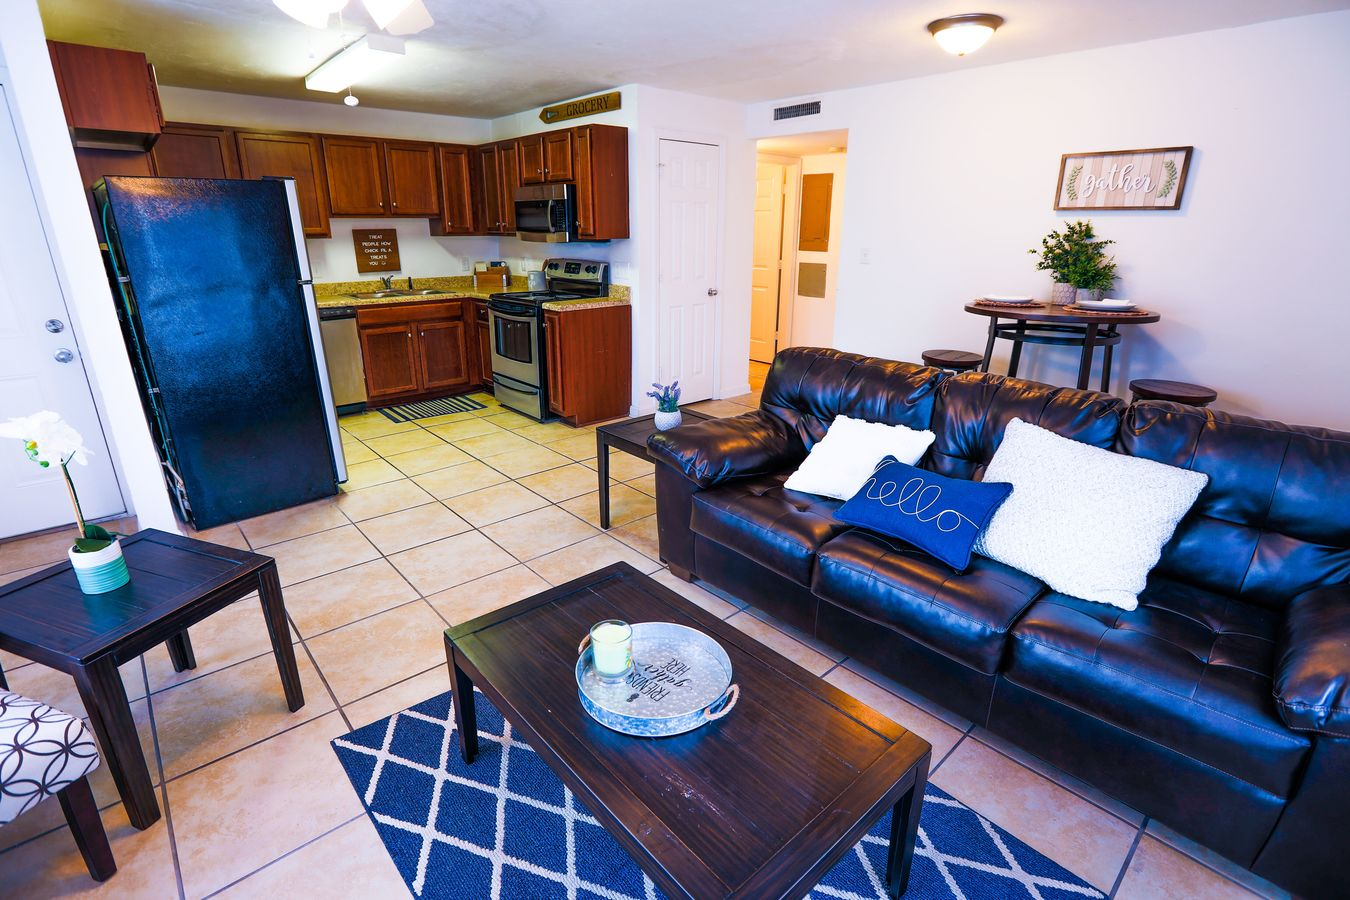 2 Bedrooms 2 Bathrooms Apartment for rent at Villa Lucia in Tallahassee, FL